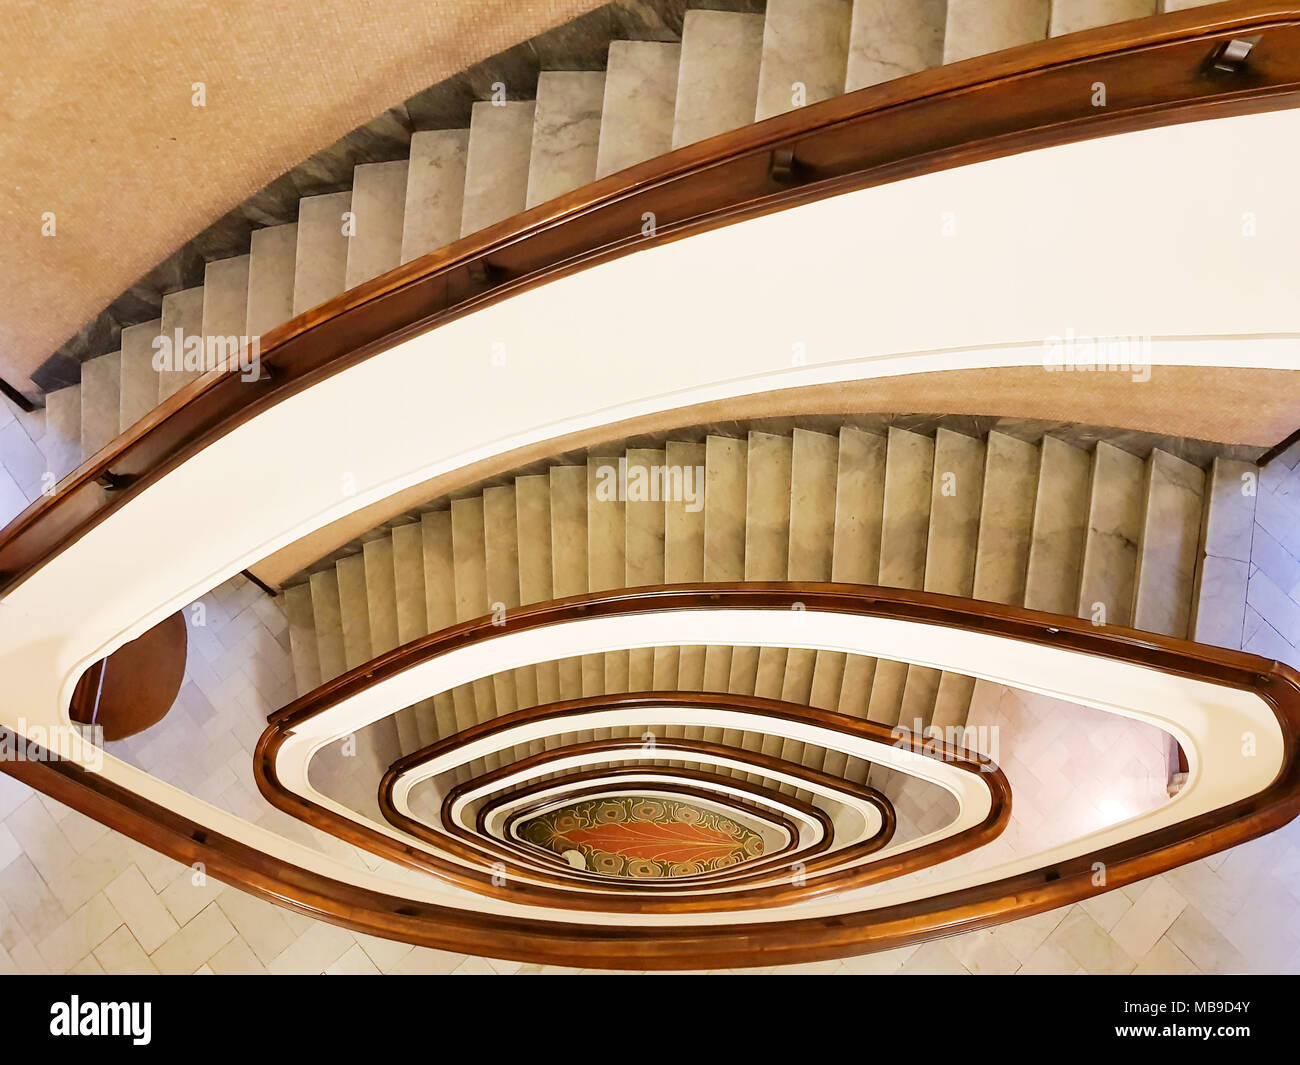 View To The Beautiful Spiral Staircase In Building , Spiral ...